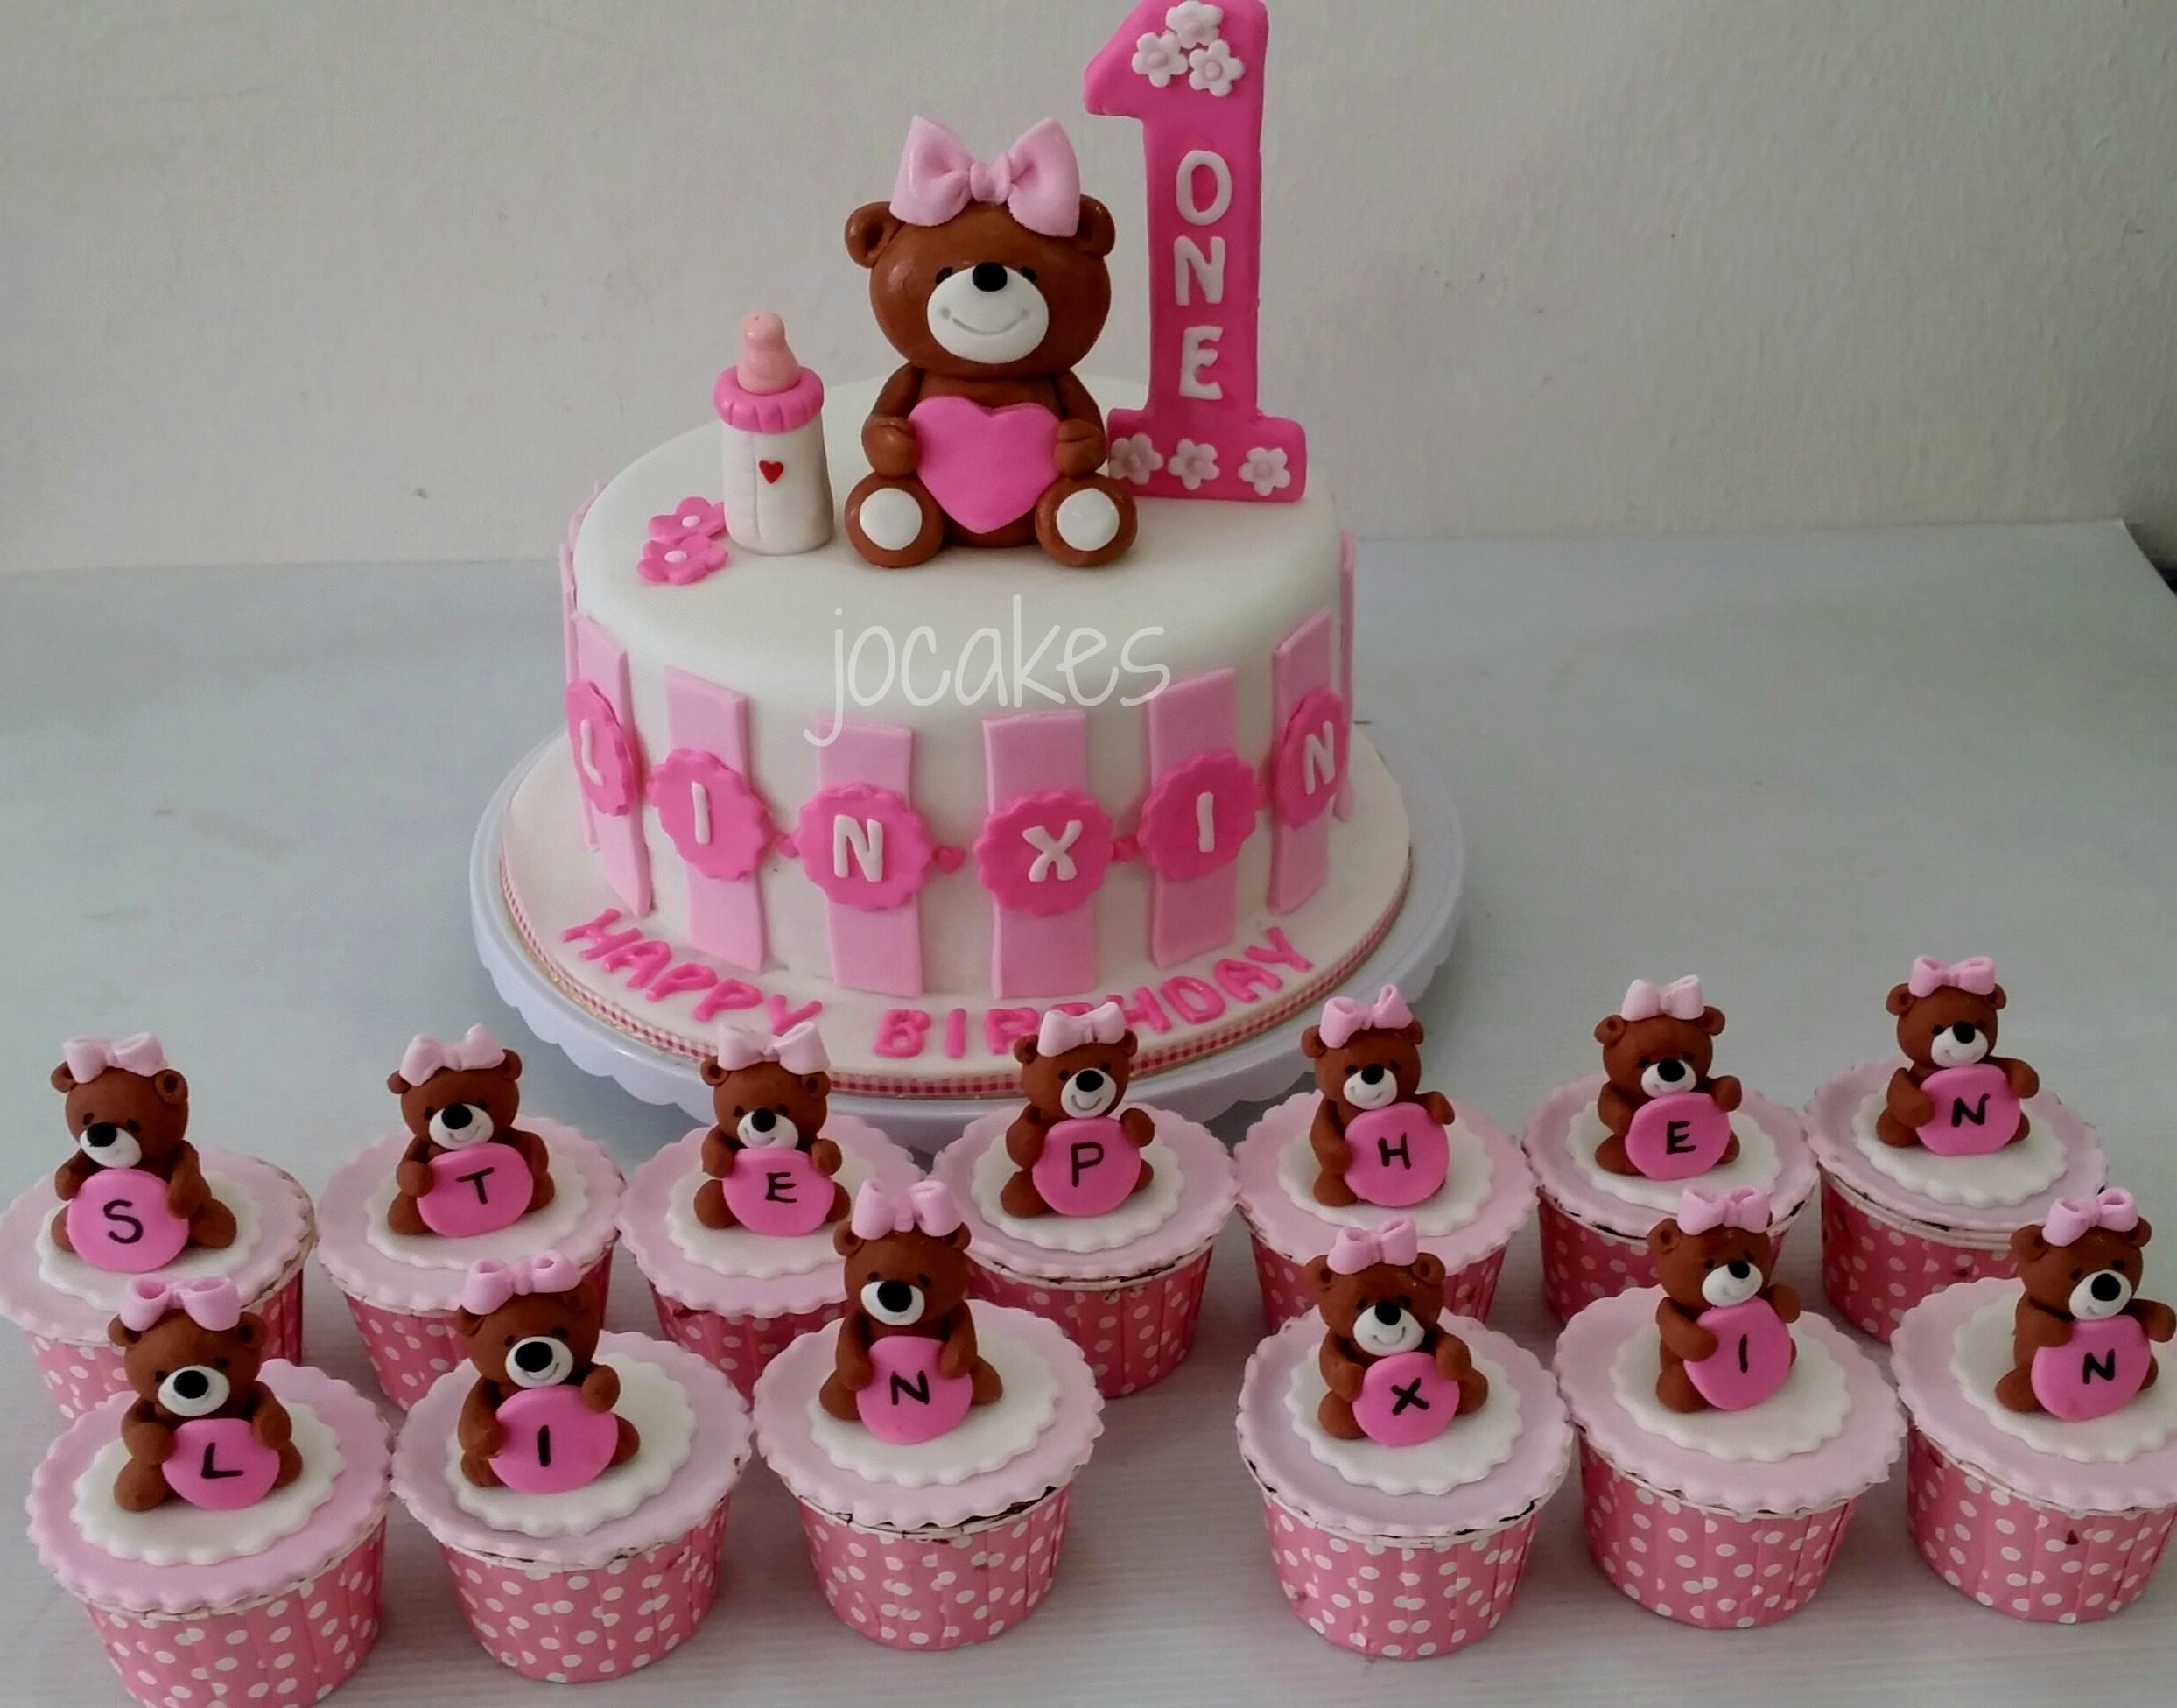 Cake Ideas For Toddler Girl Birthday : Birthday Cake For A Year Old Baby Girl Birthday cake ...